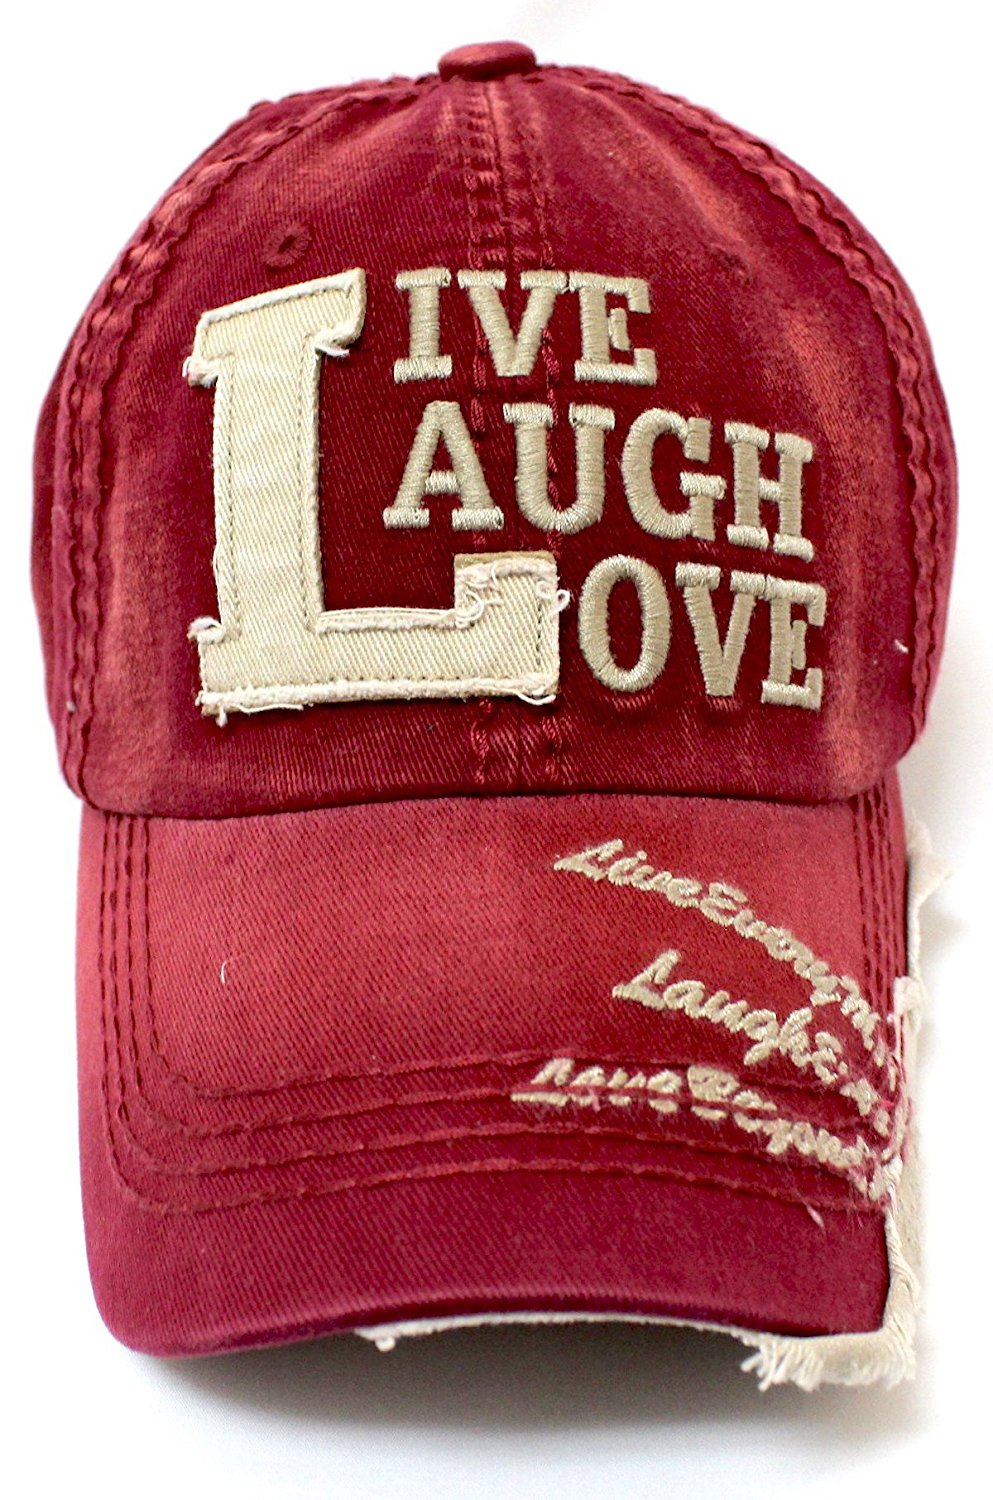 CAPS 'N VINTAGE Wine Red Live, Laugh, Love Distressed Vintage Cap - Caps 'N Vintage